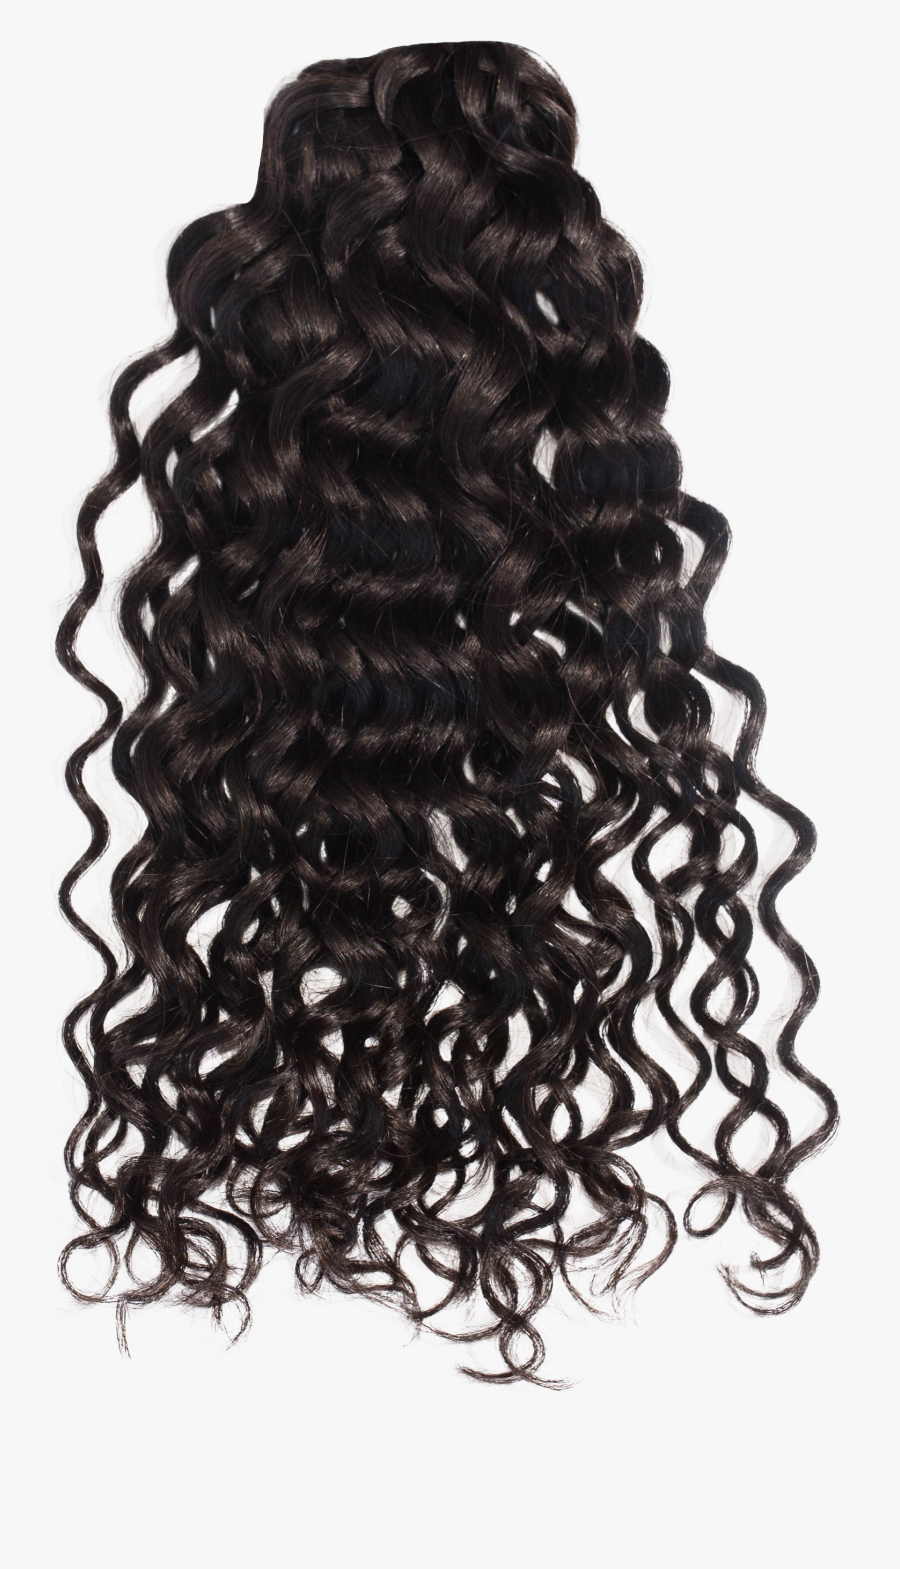 Tumblr Liked On Polyvore - Black Curly Hair Png, Transparent Clipart